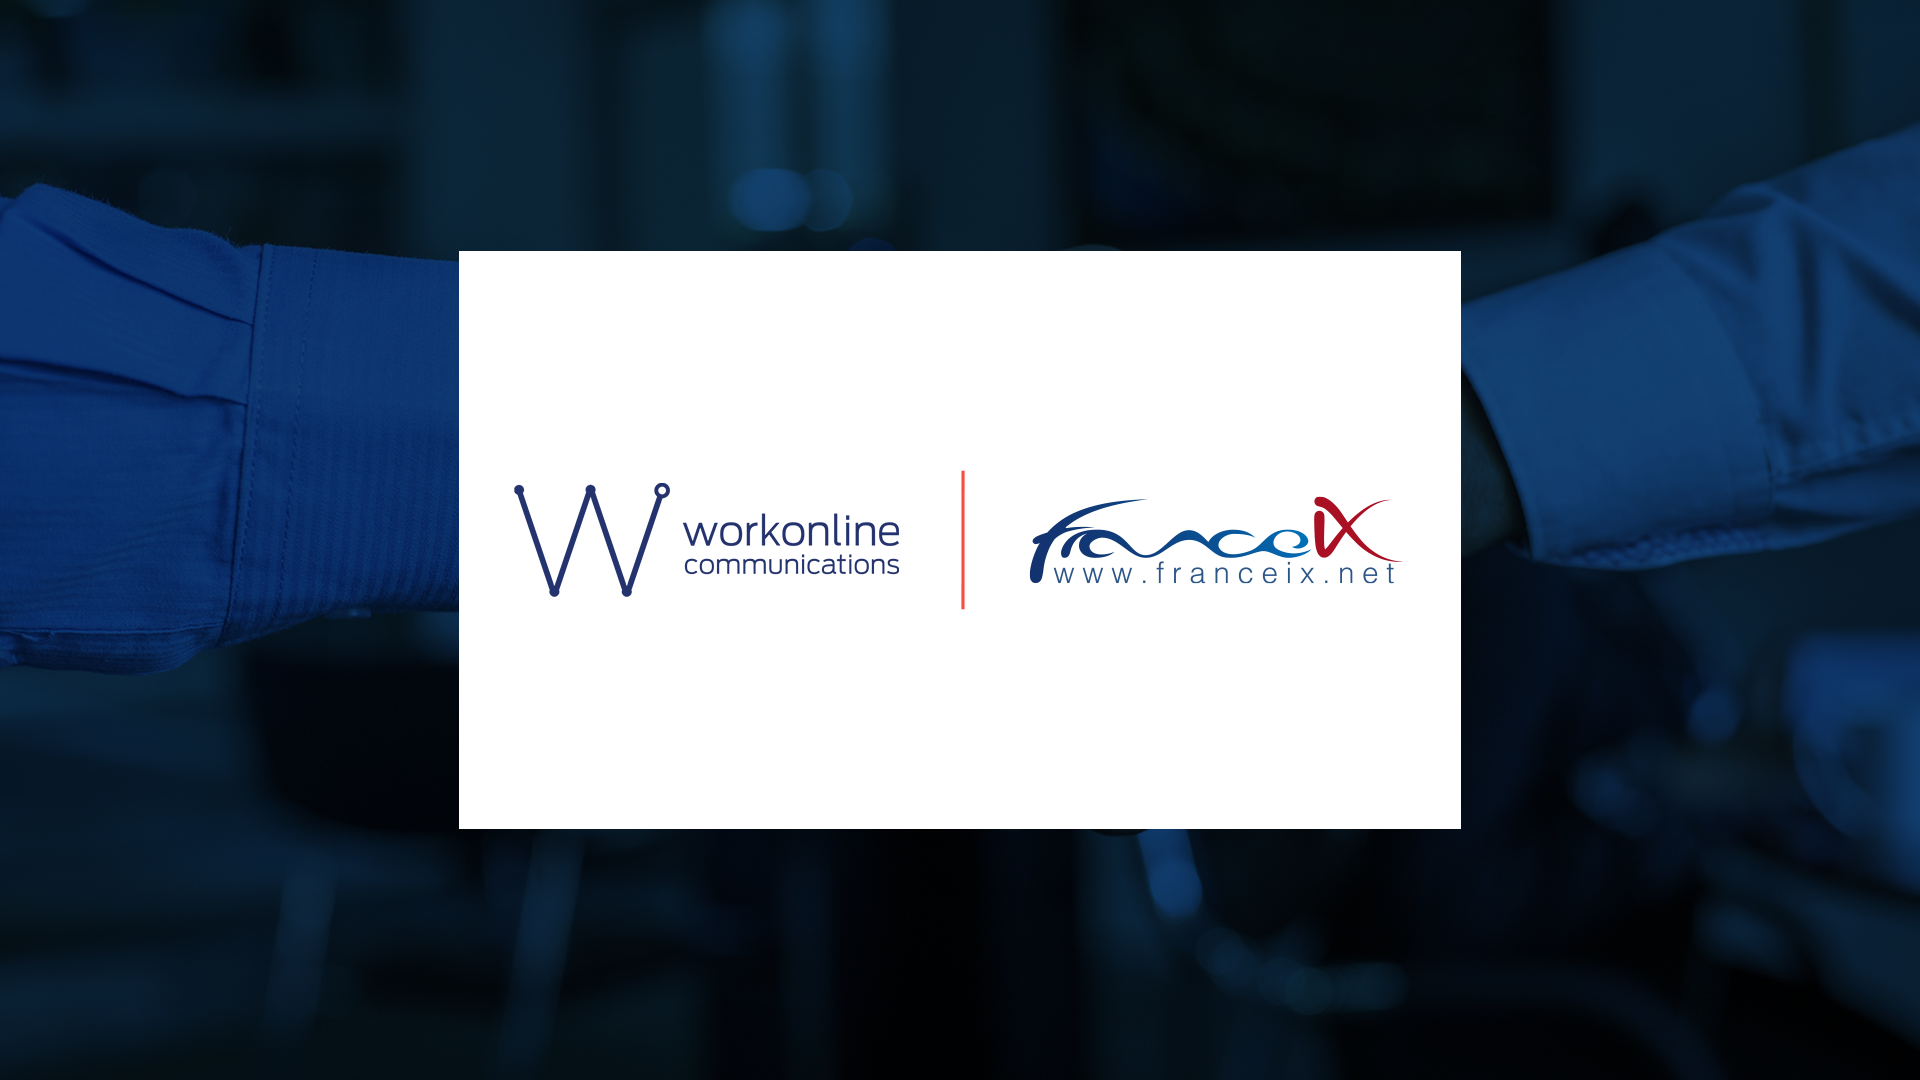 Workonline Communications Partners with France-IX to Provide Quality French Content on the African Continent